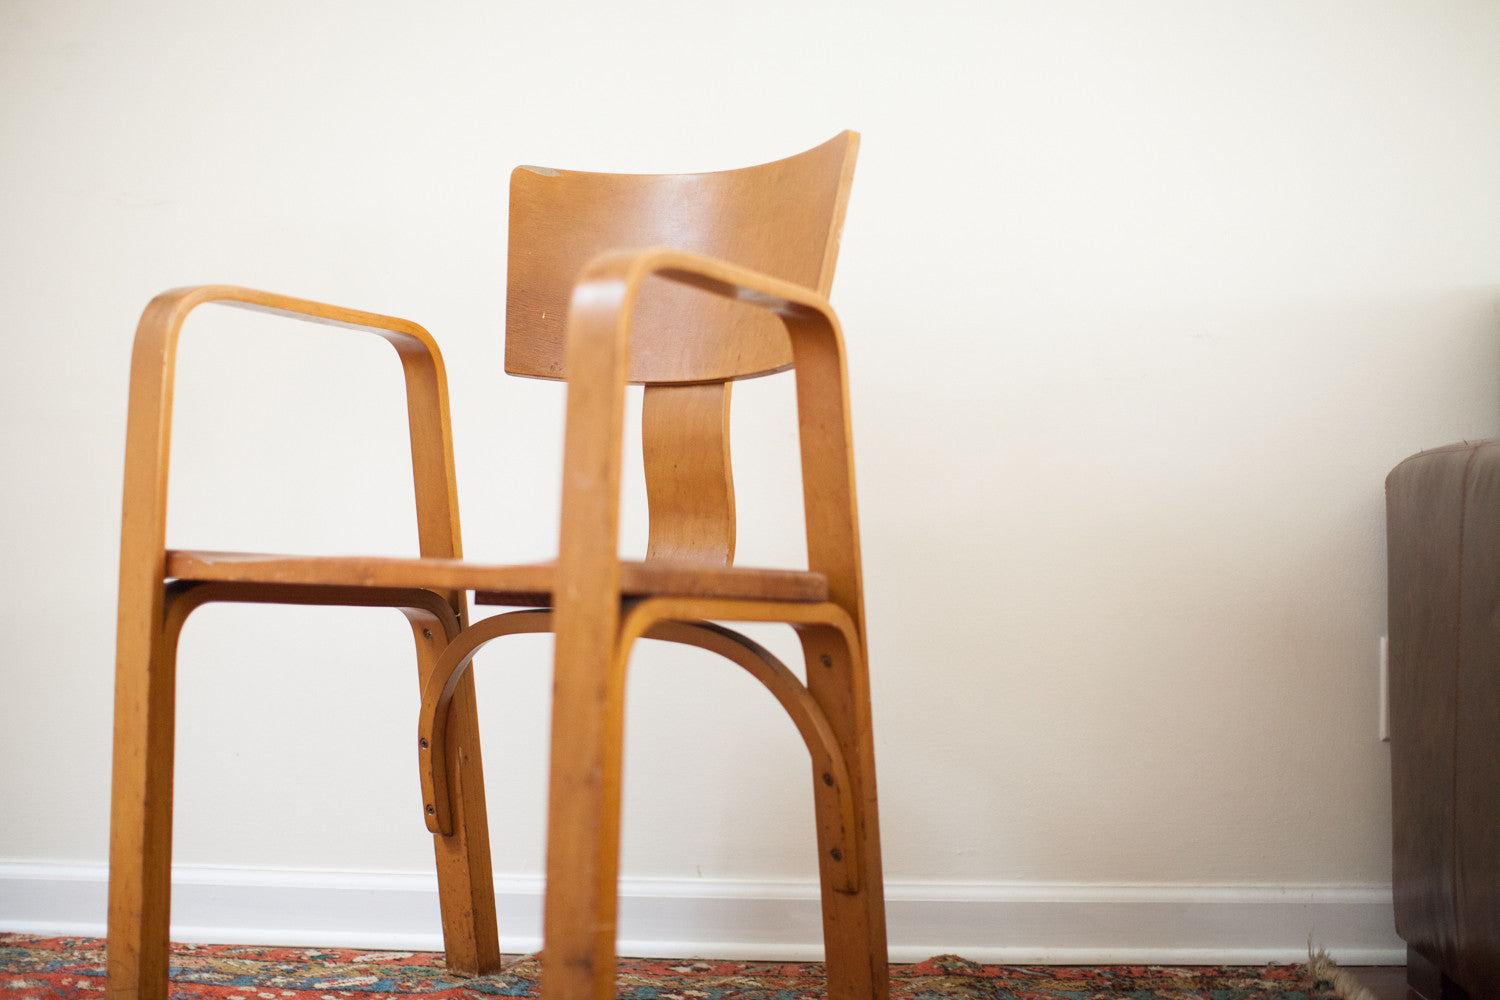 Previous Image Next Image. Early Vintage Thonet Bent Plywood Chair ...